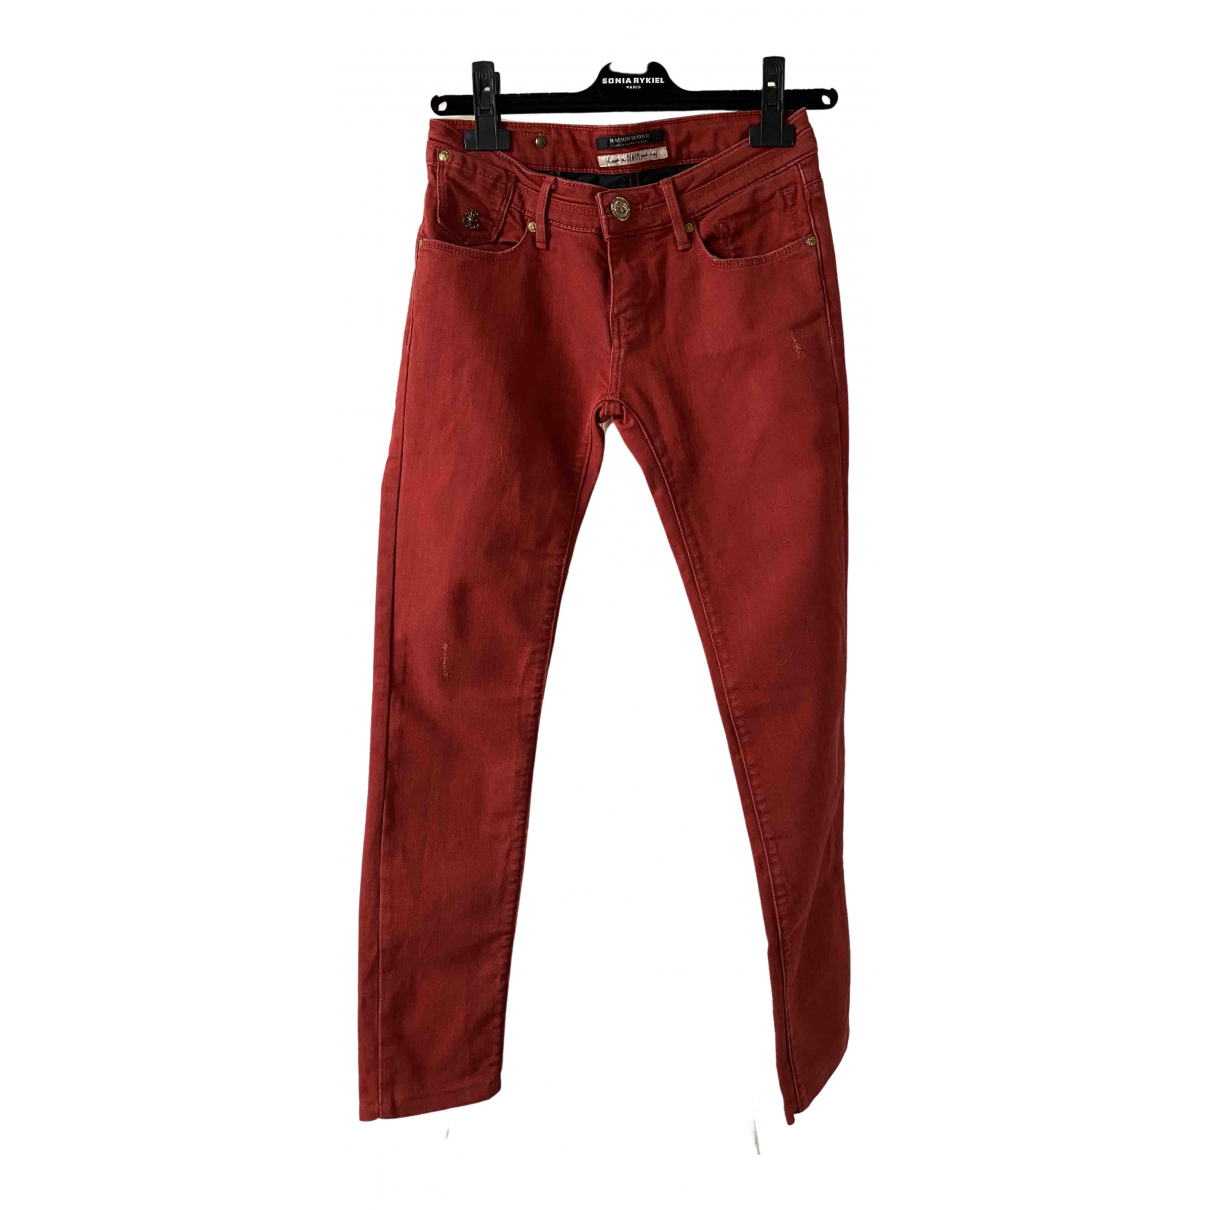 Maison Scotch \N Red Cotton Jeans for Women 25 US